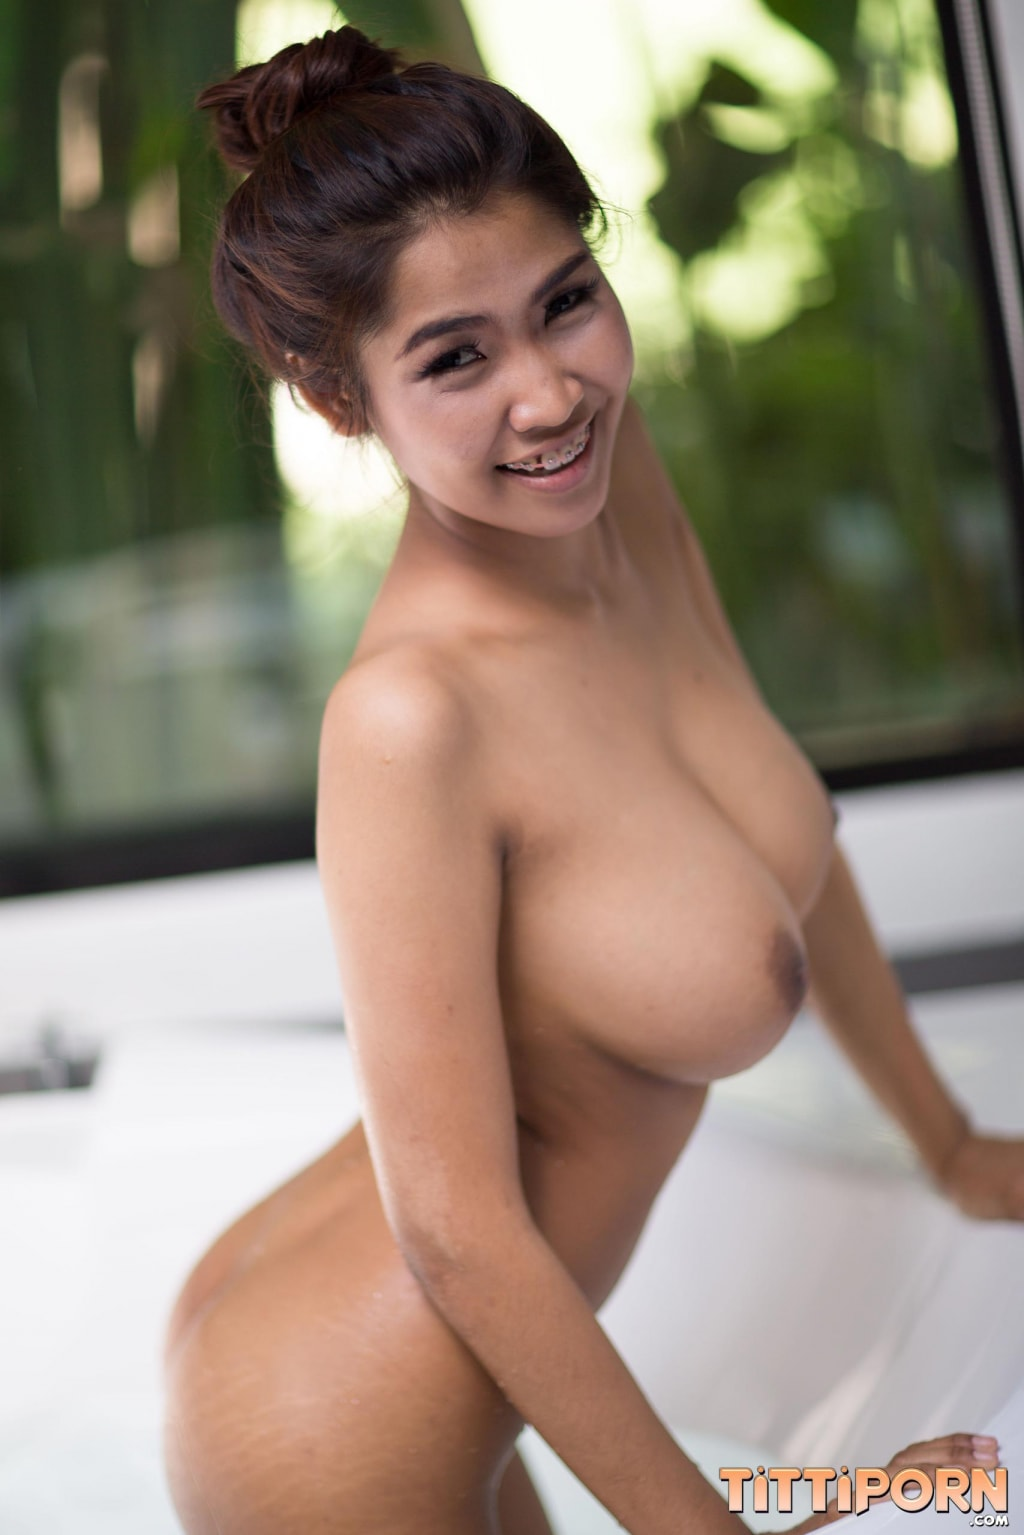 Huge Tits Thai Teen Tittiporn Bathing - Teens In Asia-5454